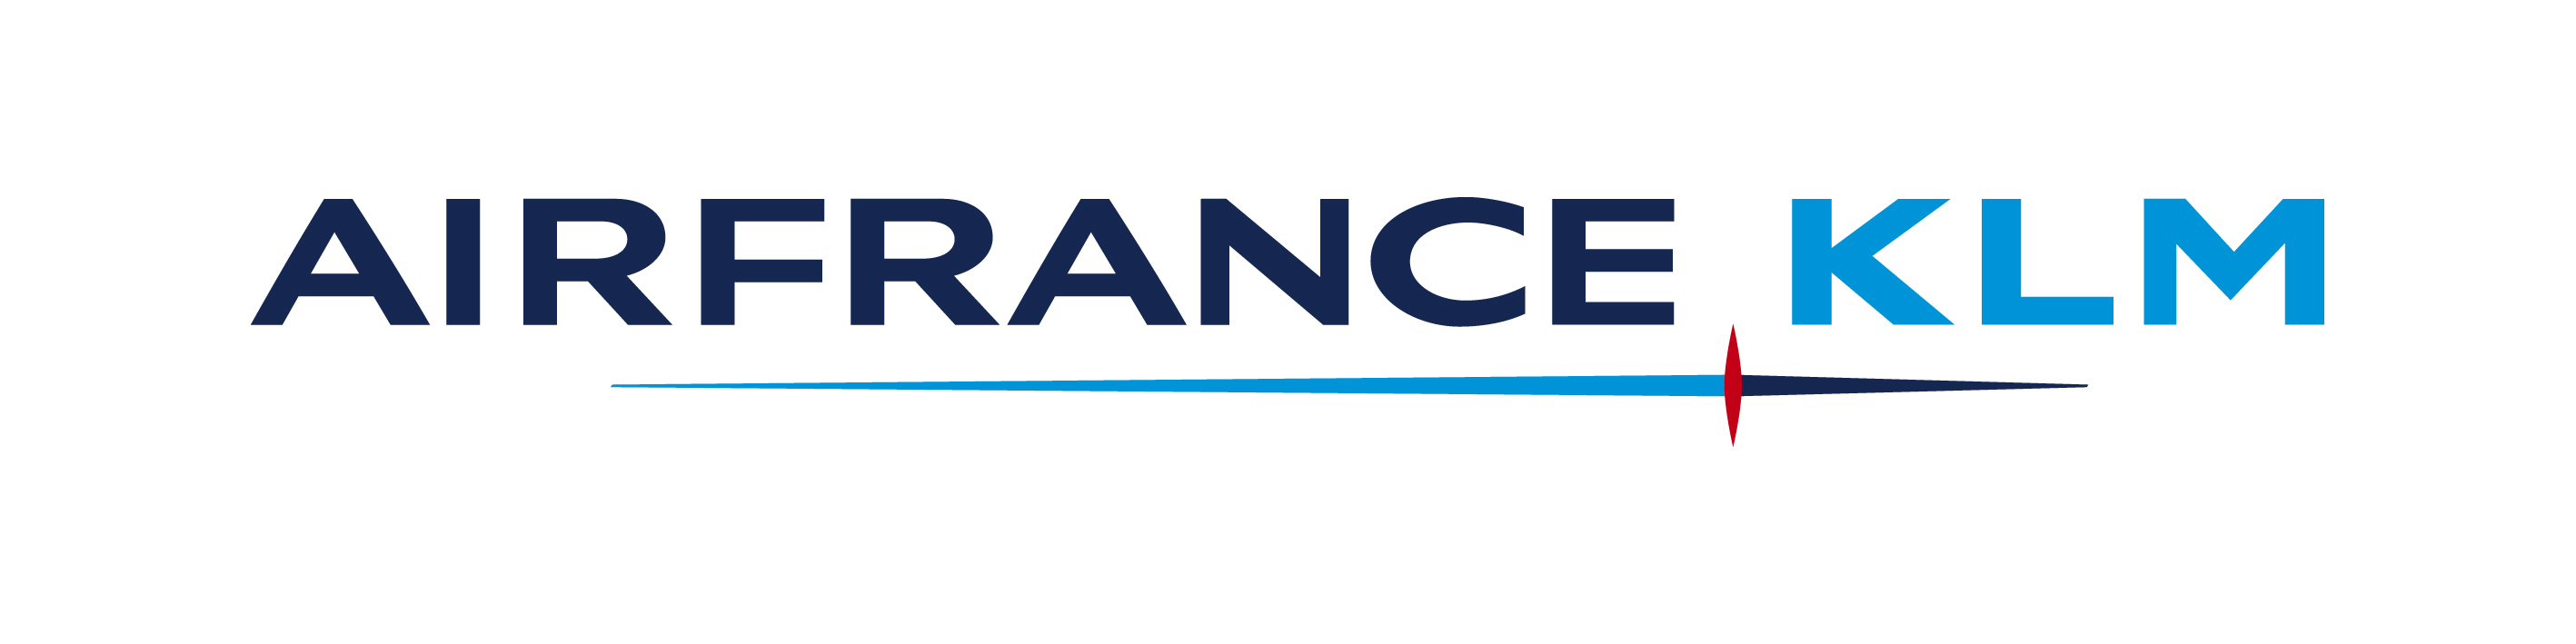 Air France-KLM_Group_Isologotype